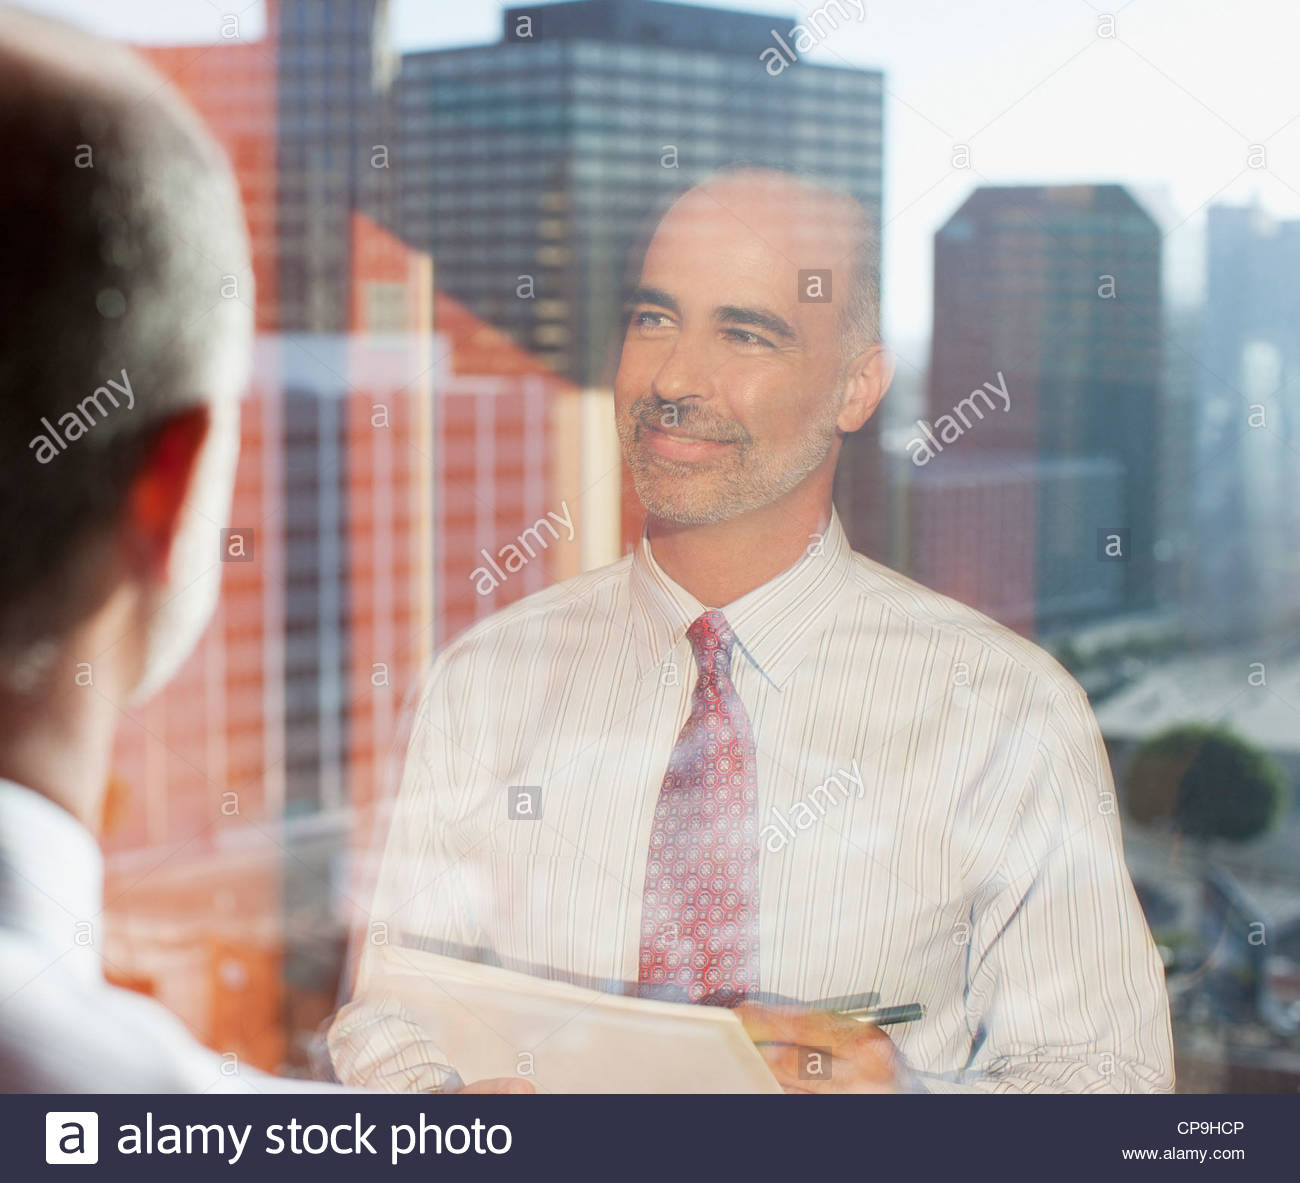 50-54 years,ambition,bald,business,business attire,businessman,california,city life,color image,day,happiness,head - Stock Image